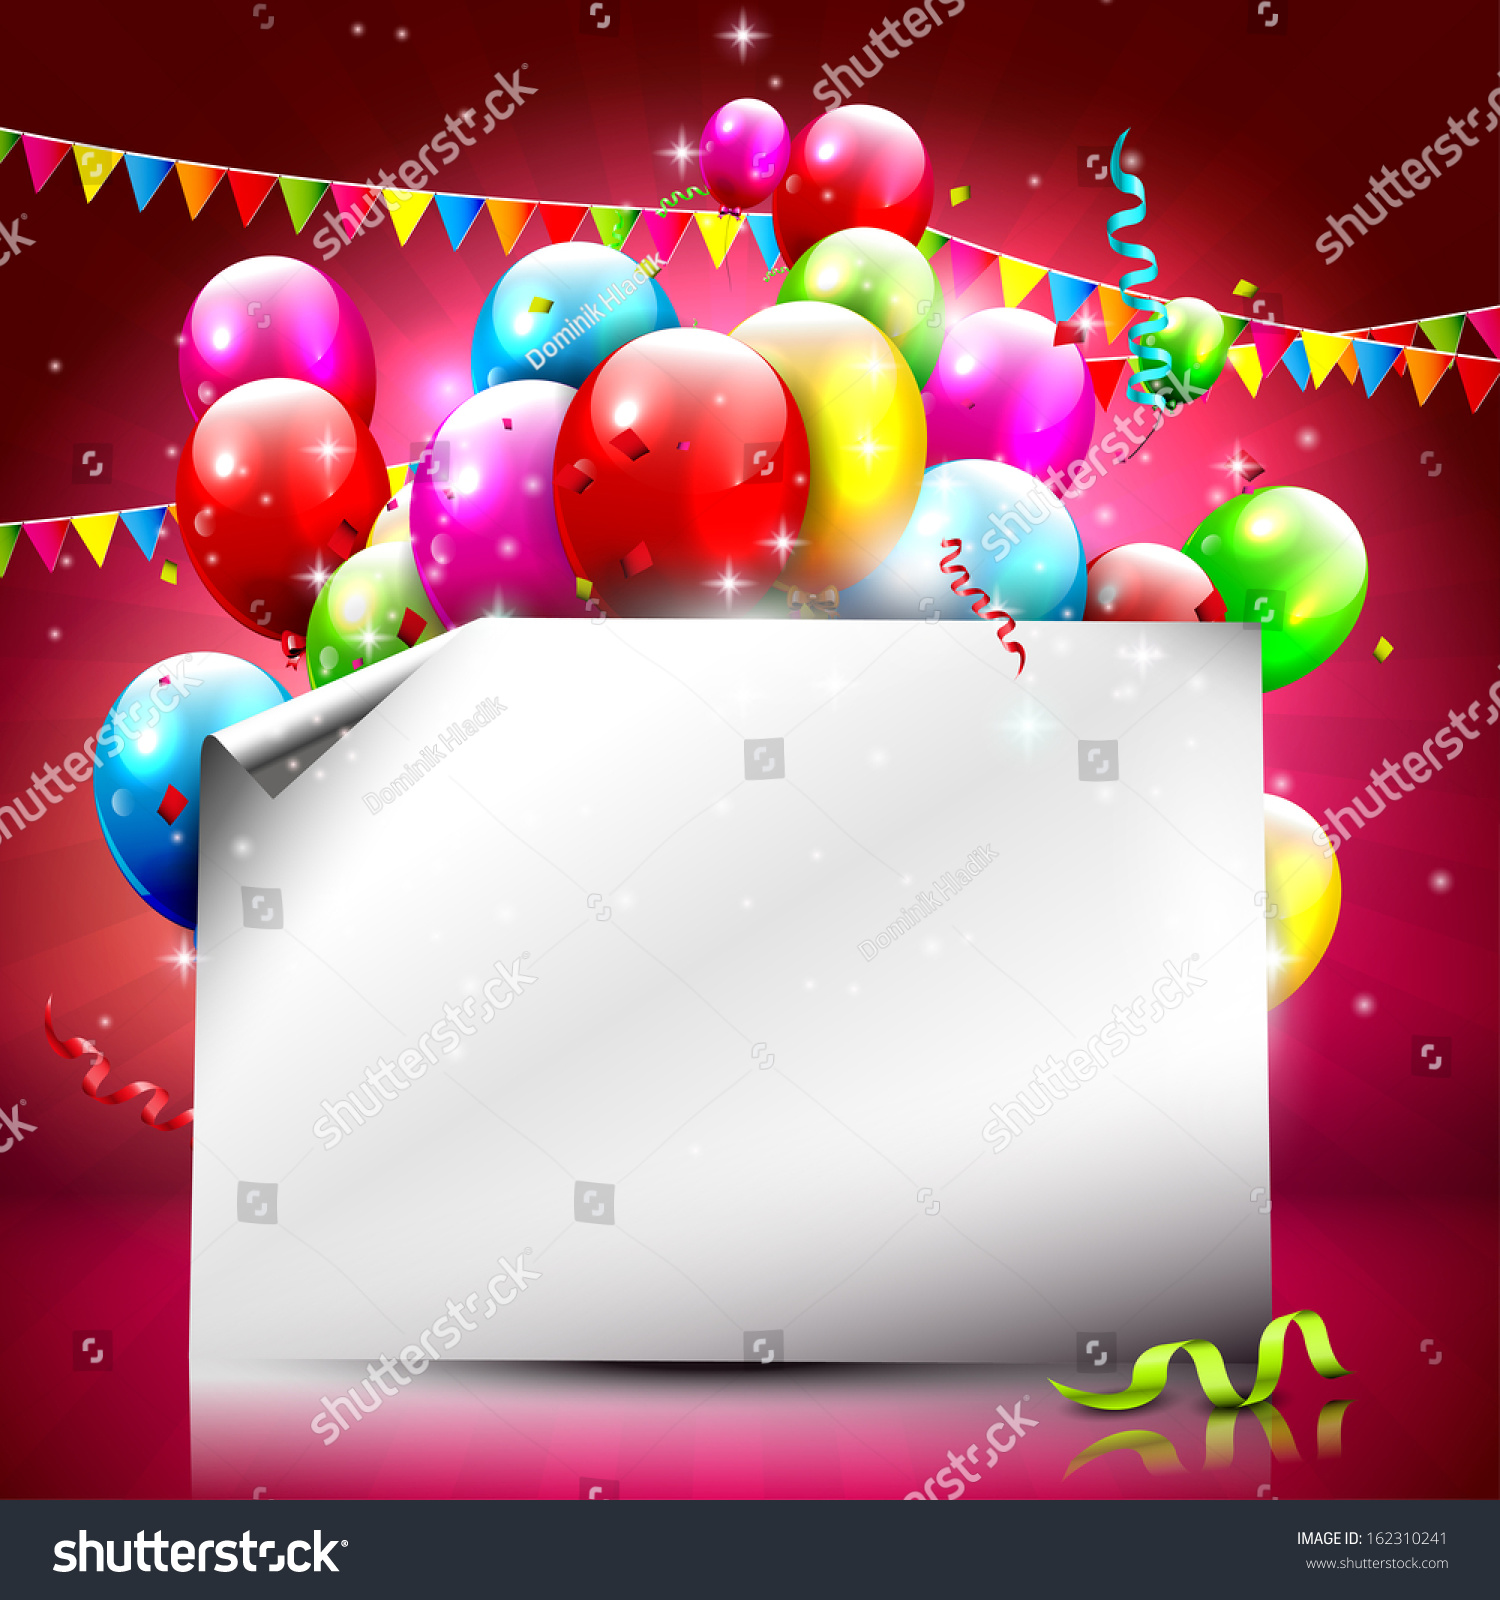 Birthday Background With Colorful Balloons And Empty Paper